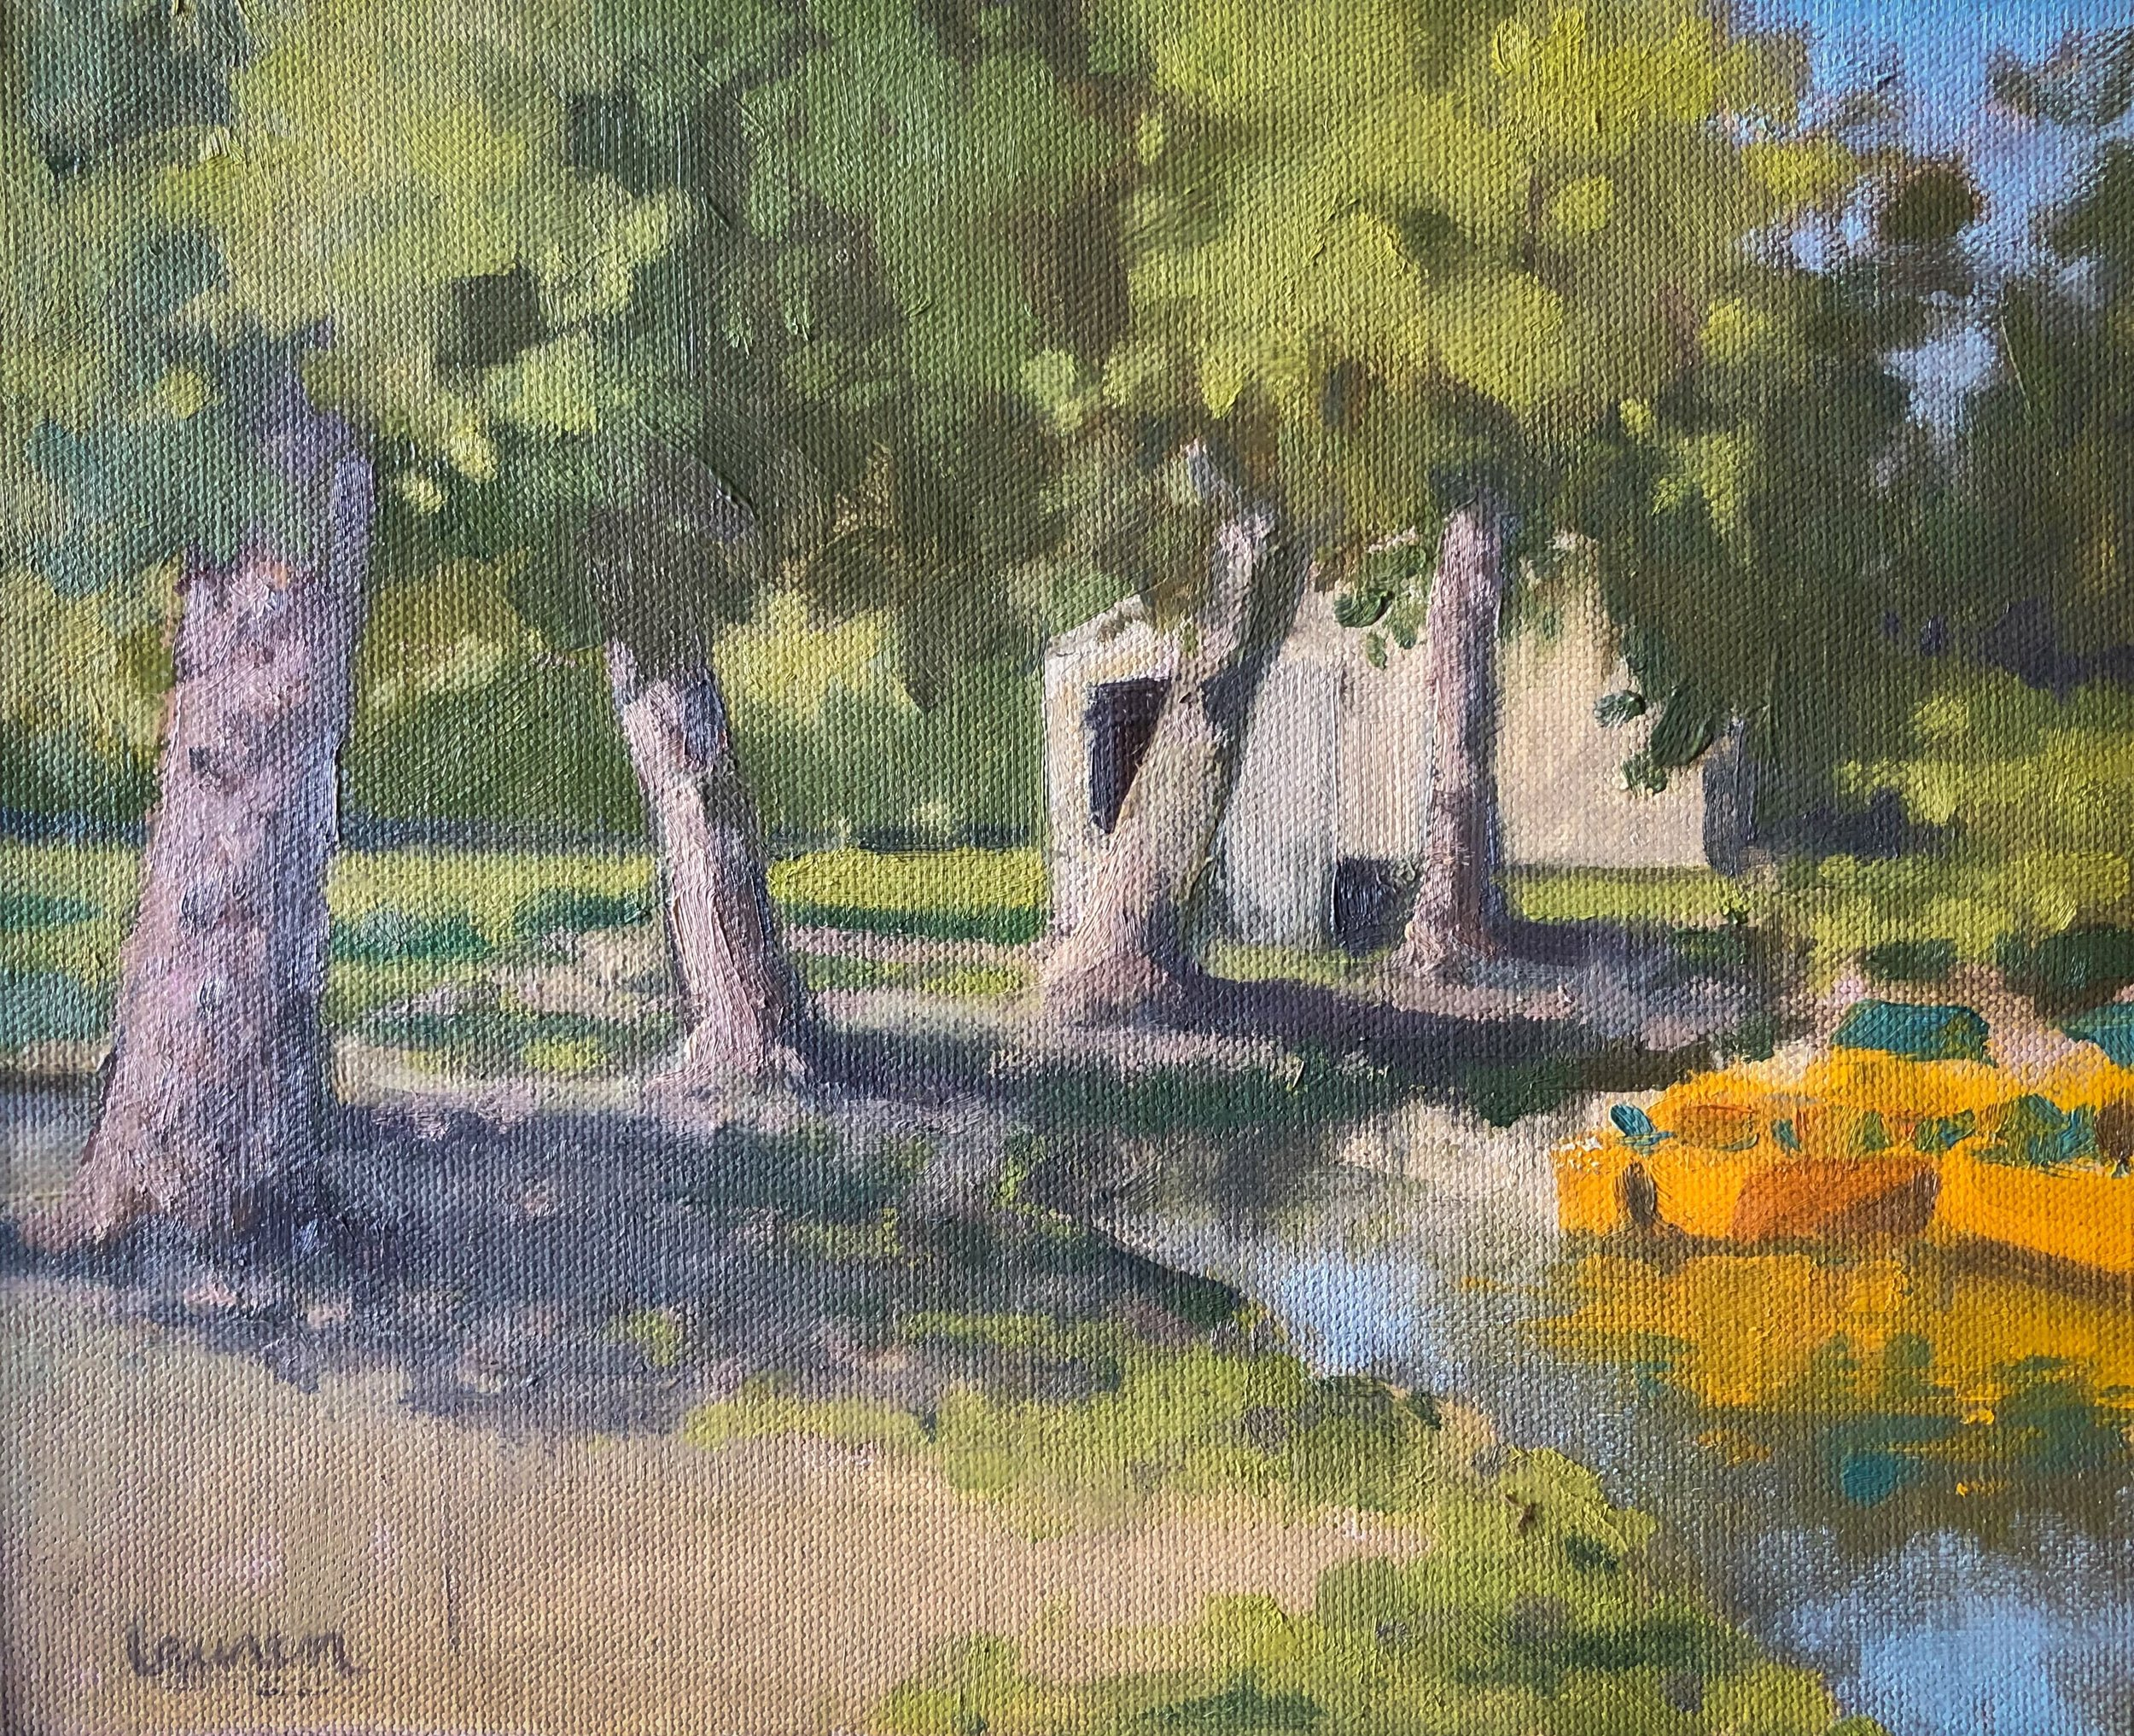 """Wash Park, Denver, CO, 2017"" 8x10 oil on canvas   SOLD - in support of La Napoule Art Foundation"